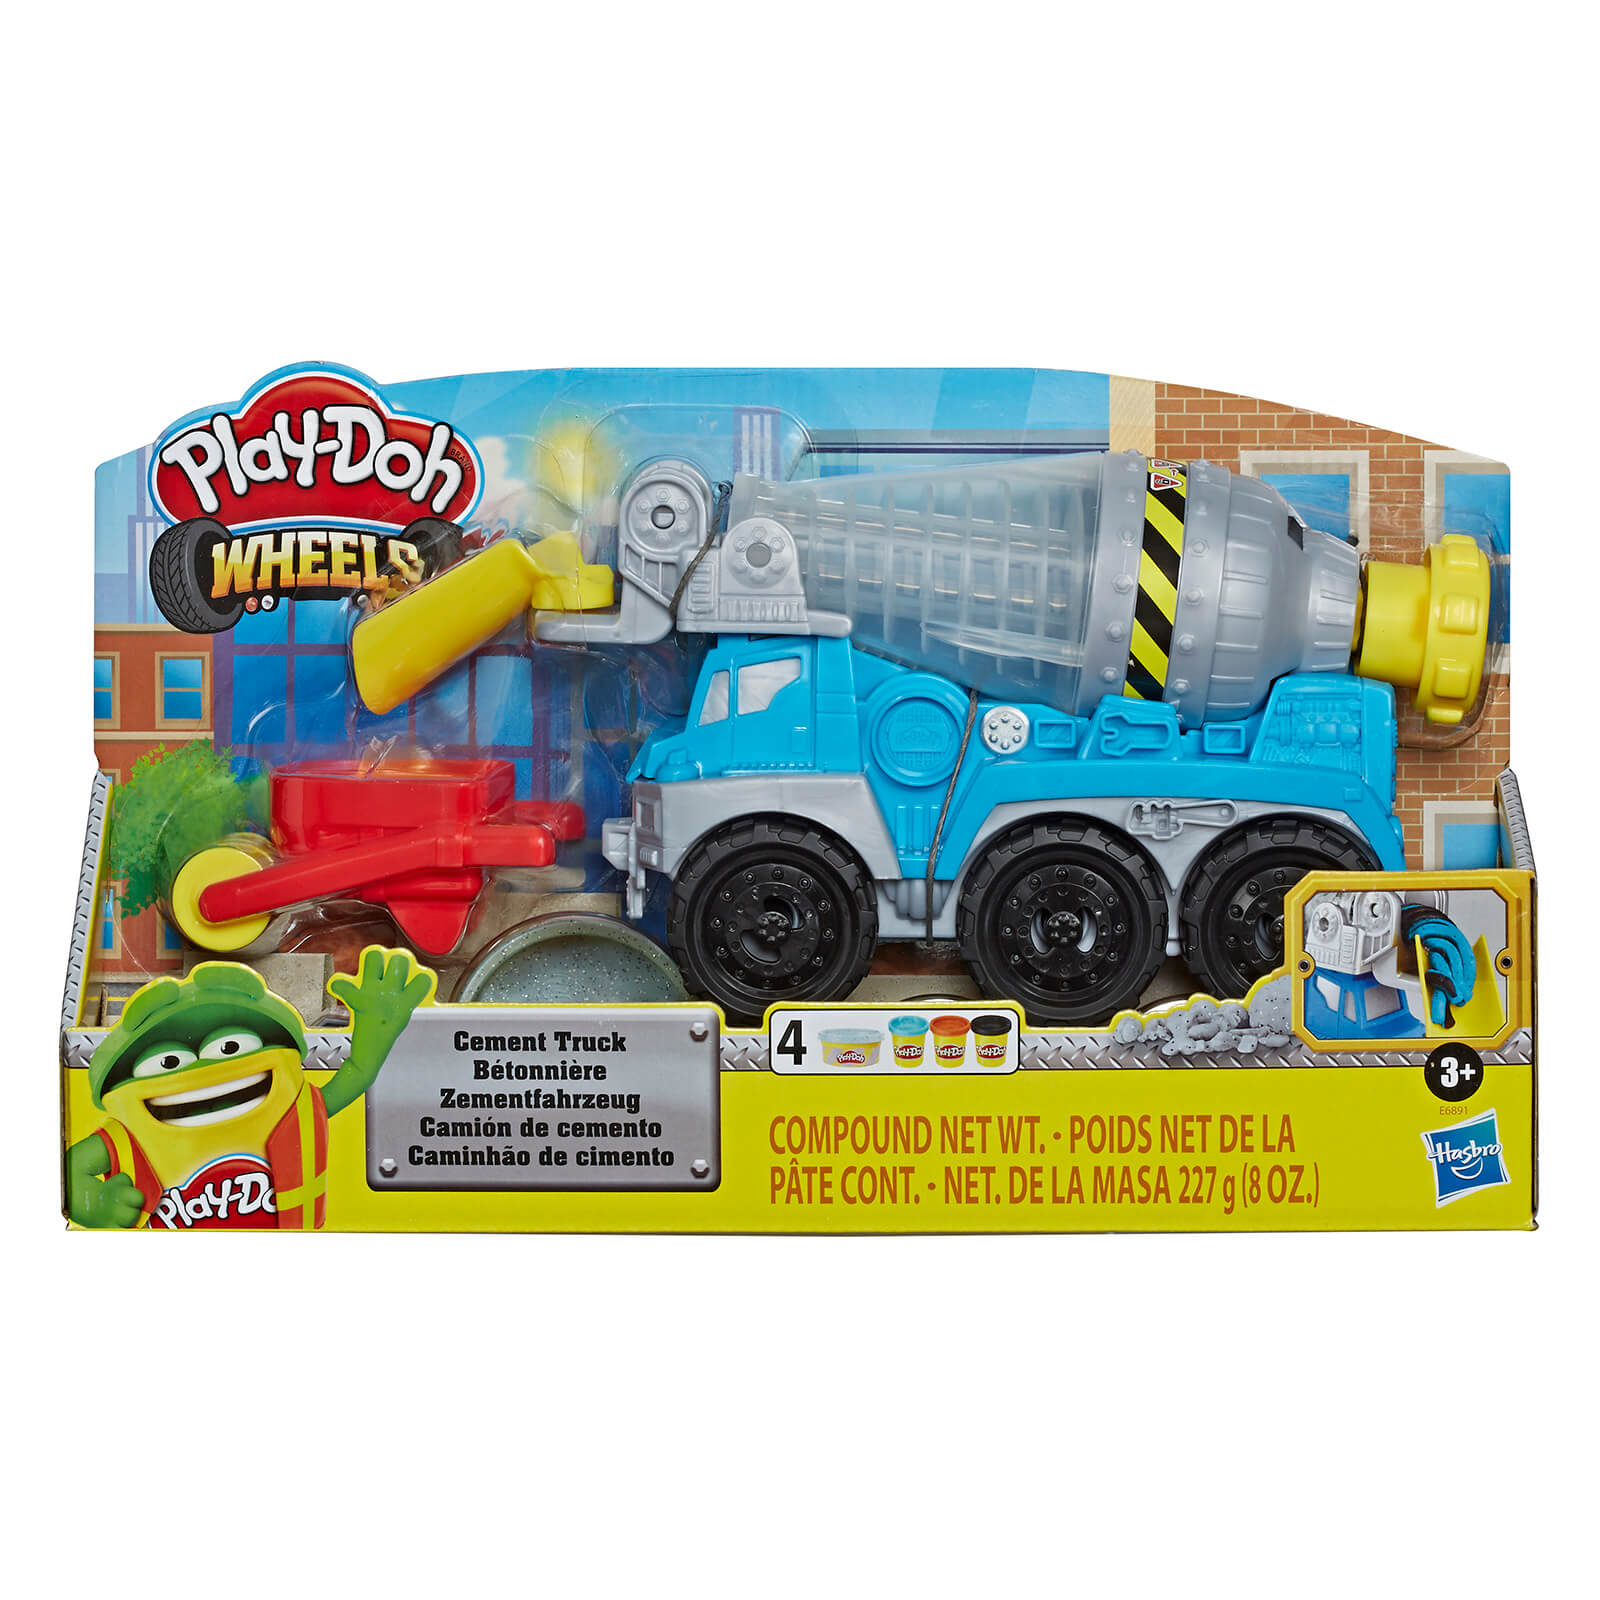 Play-Doh Cement Truck Playset